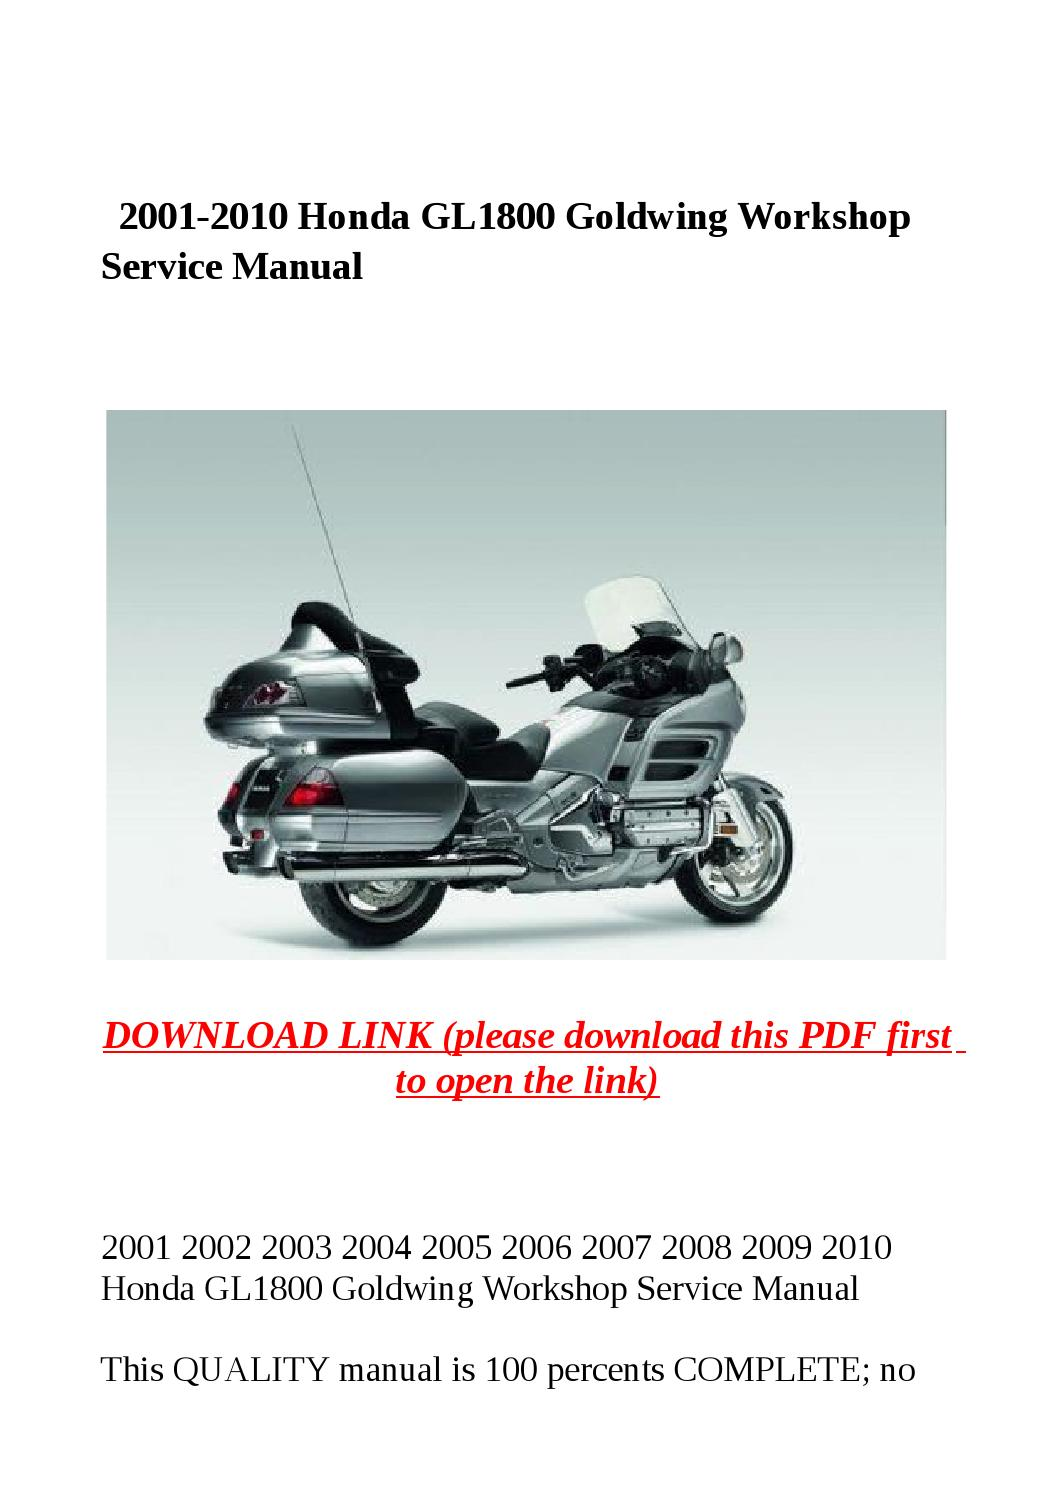 2001 gl1800 wiring schematic 2001 free image about wiring diagram - 2001 2010 Honda Gl1800 Goldwing Workshop Service Manual By Steve Issuu